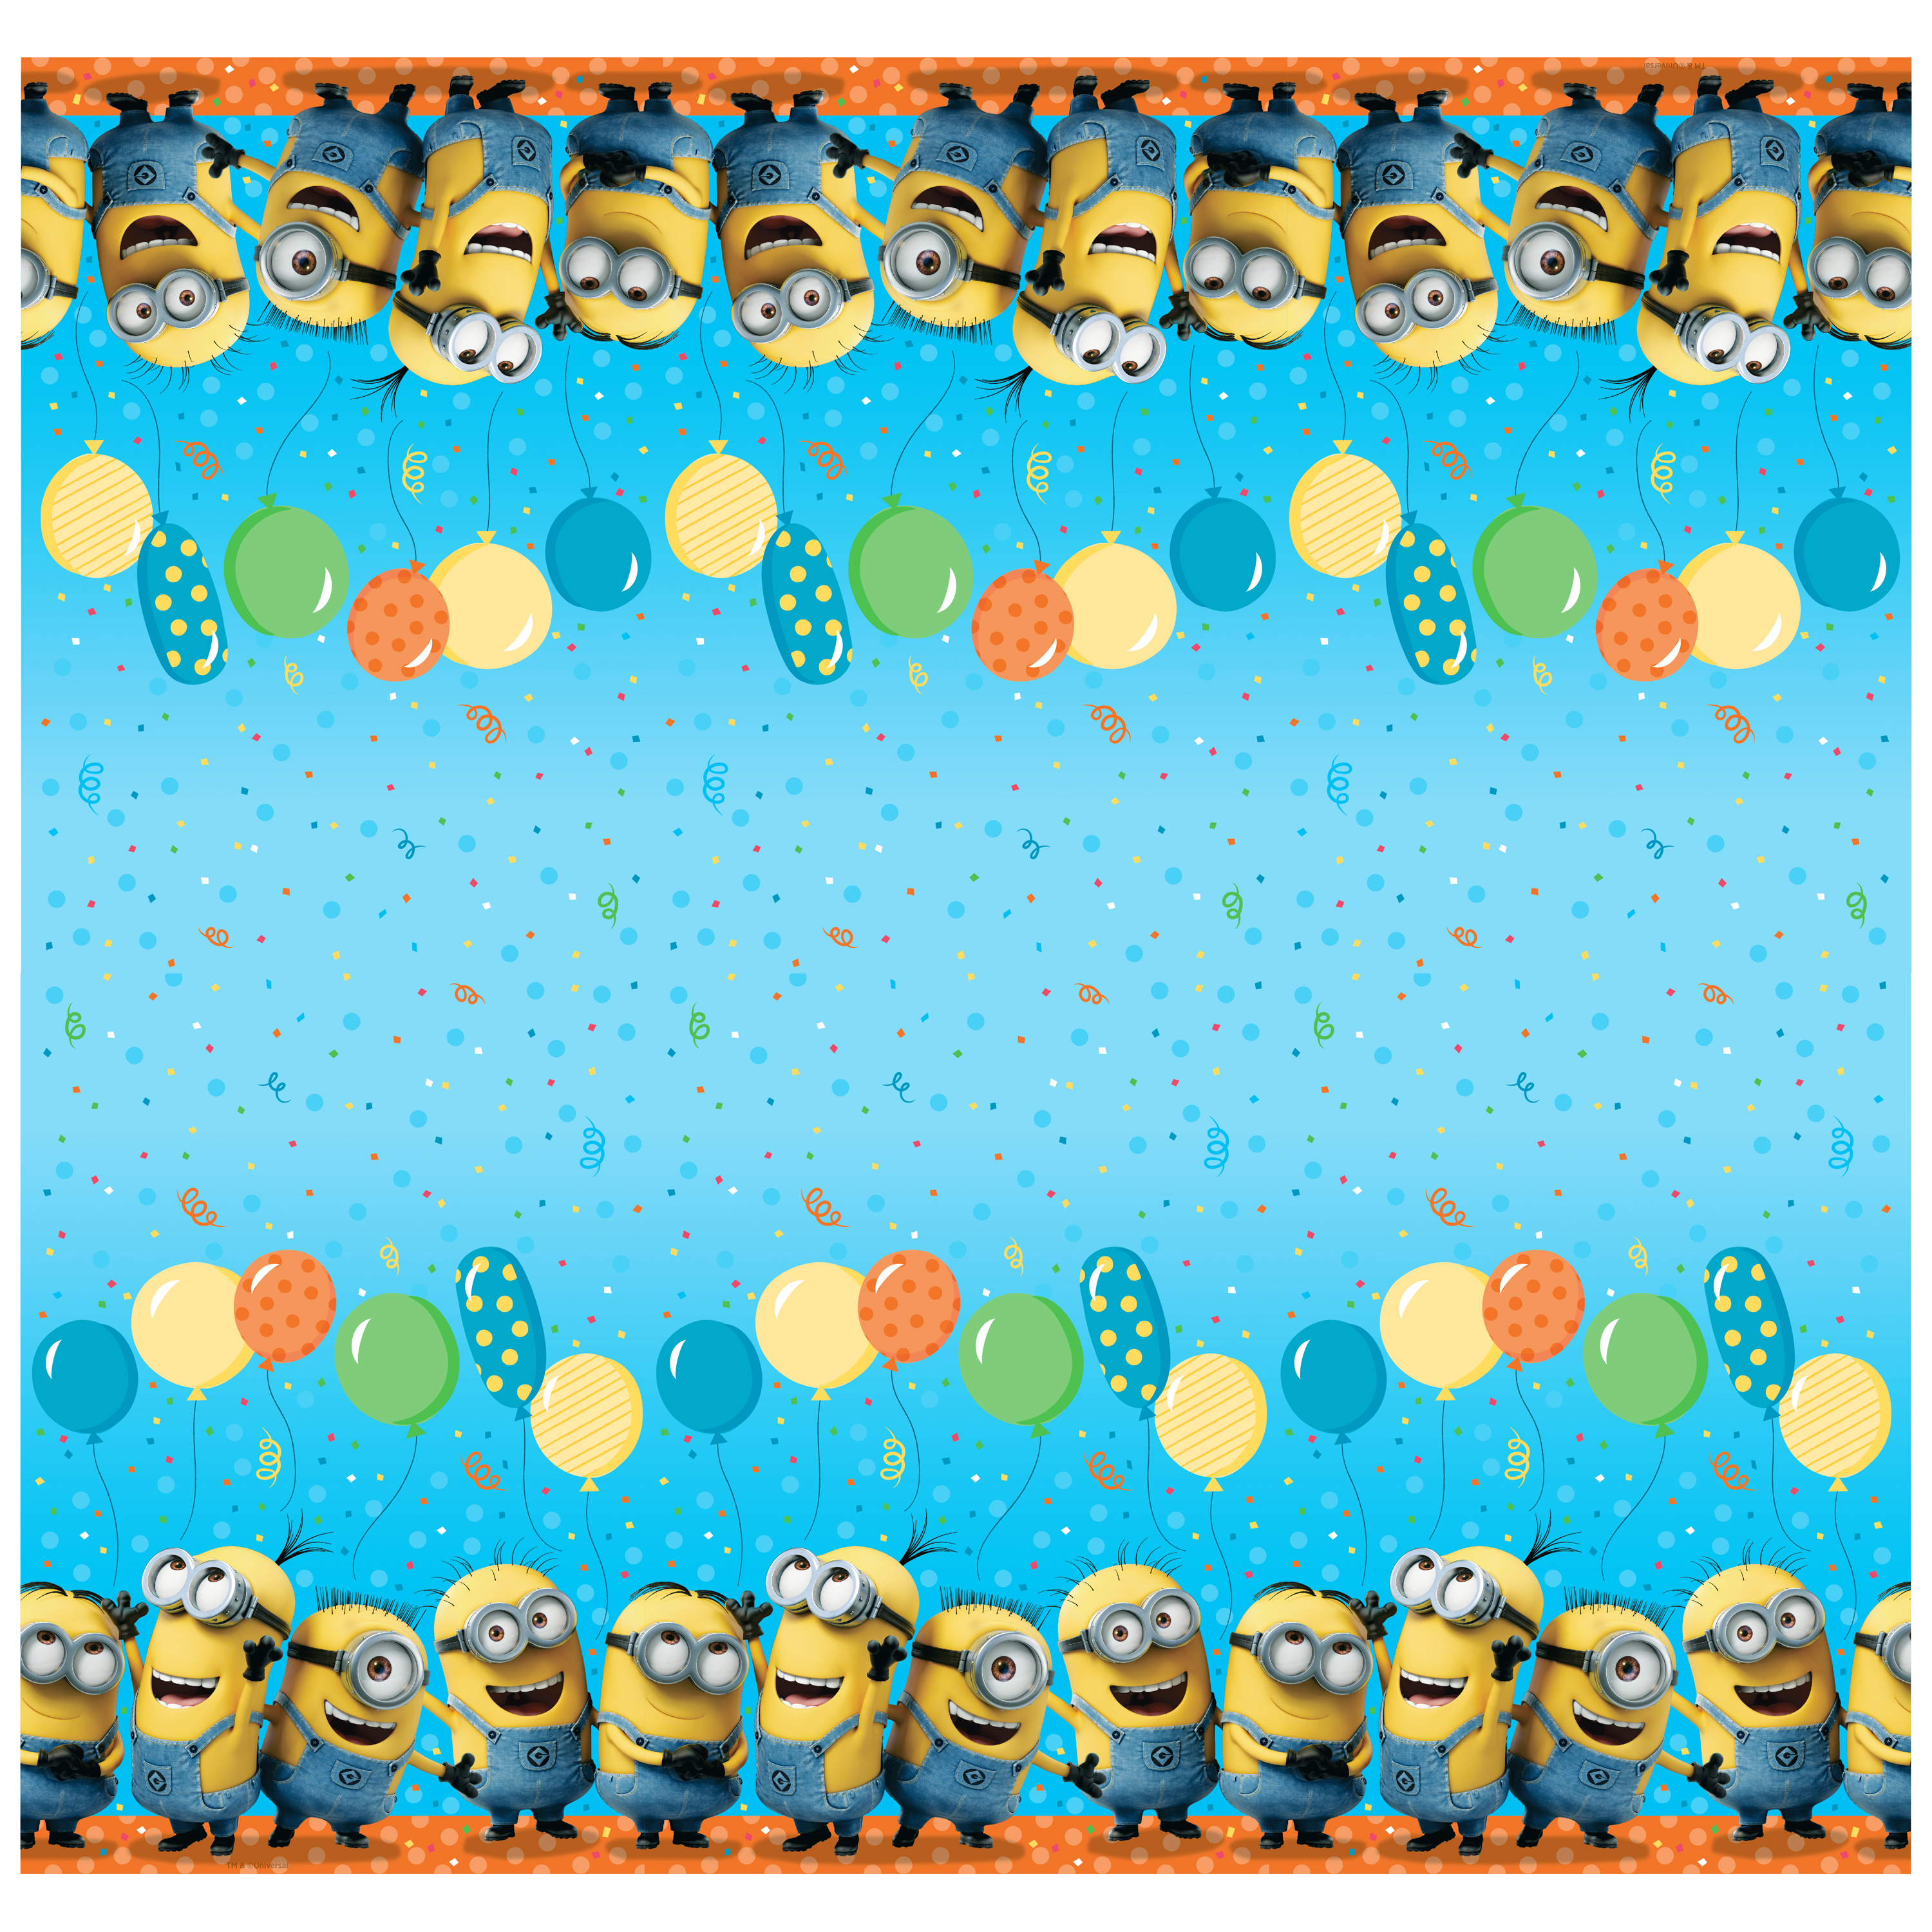 Despicable Me Minions Plastic Tablecloth, 84 x 54 in, 1ct